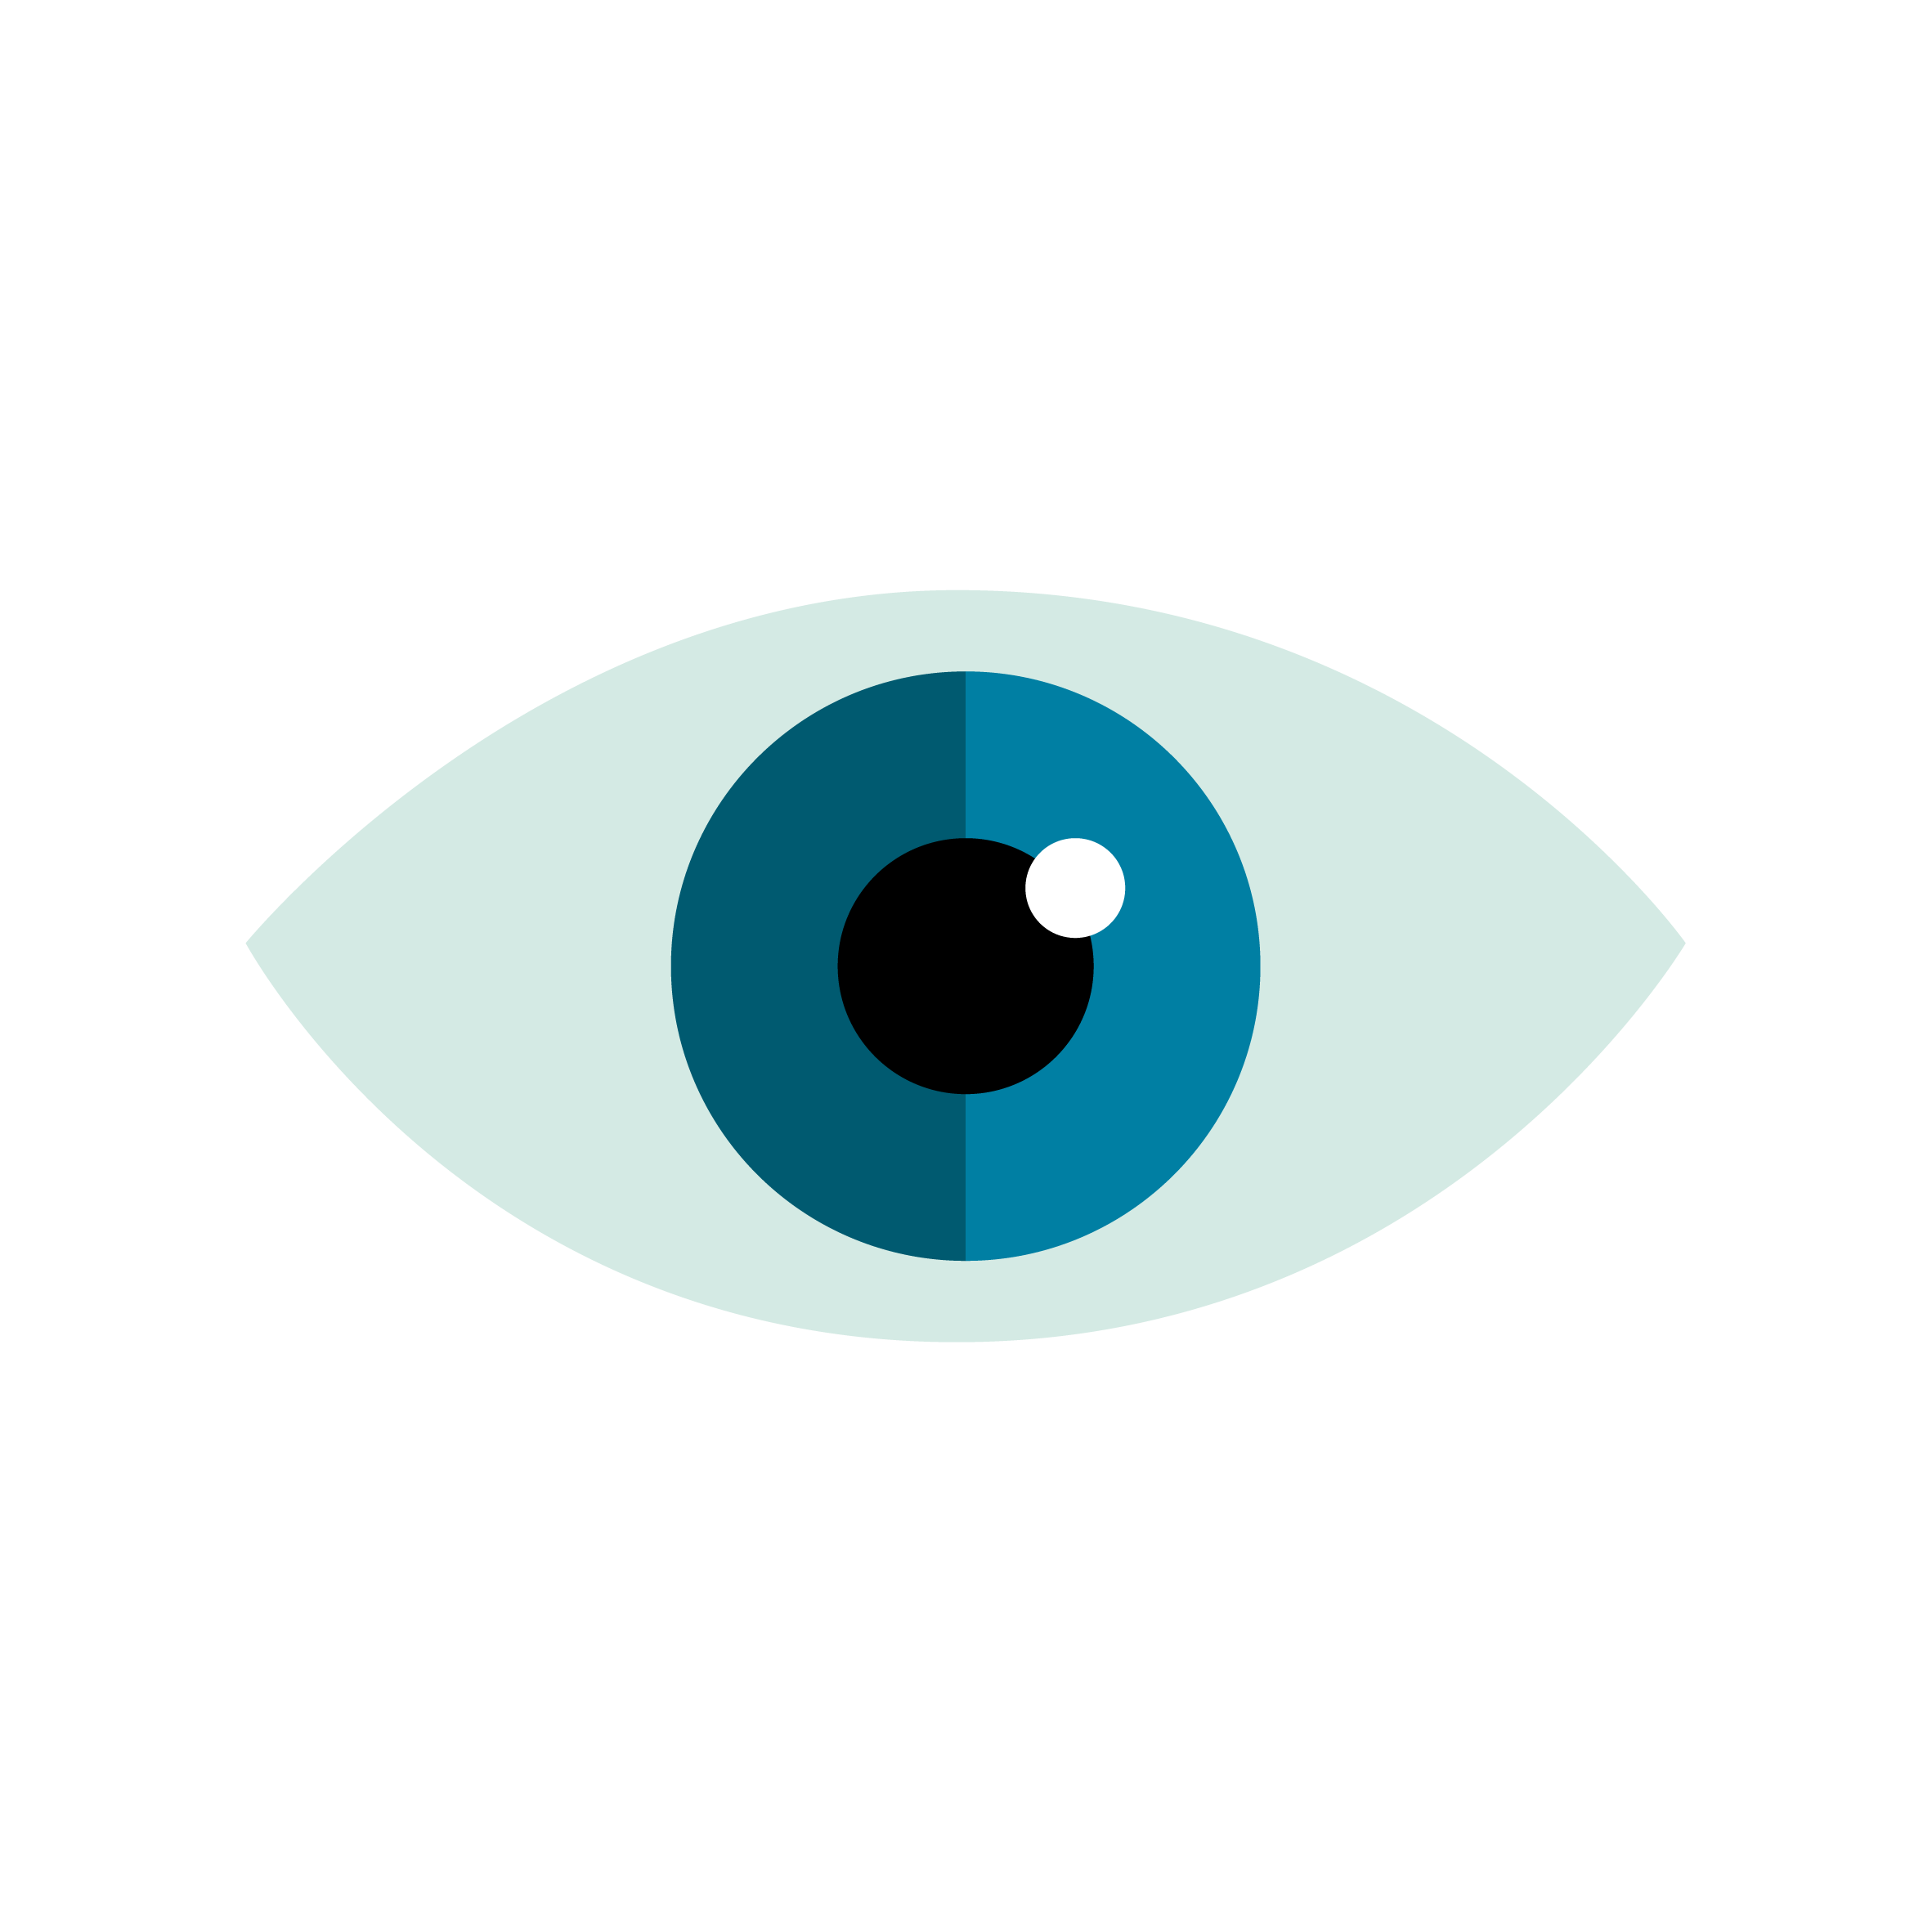 Eye Pictogram